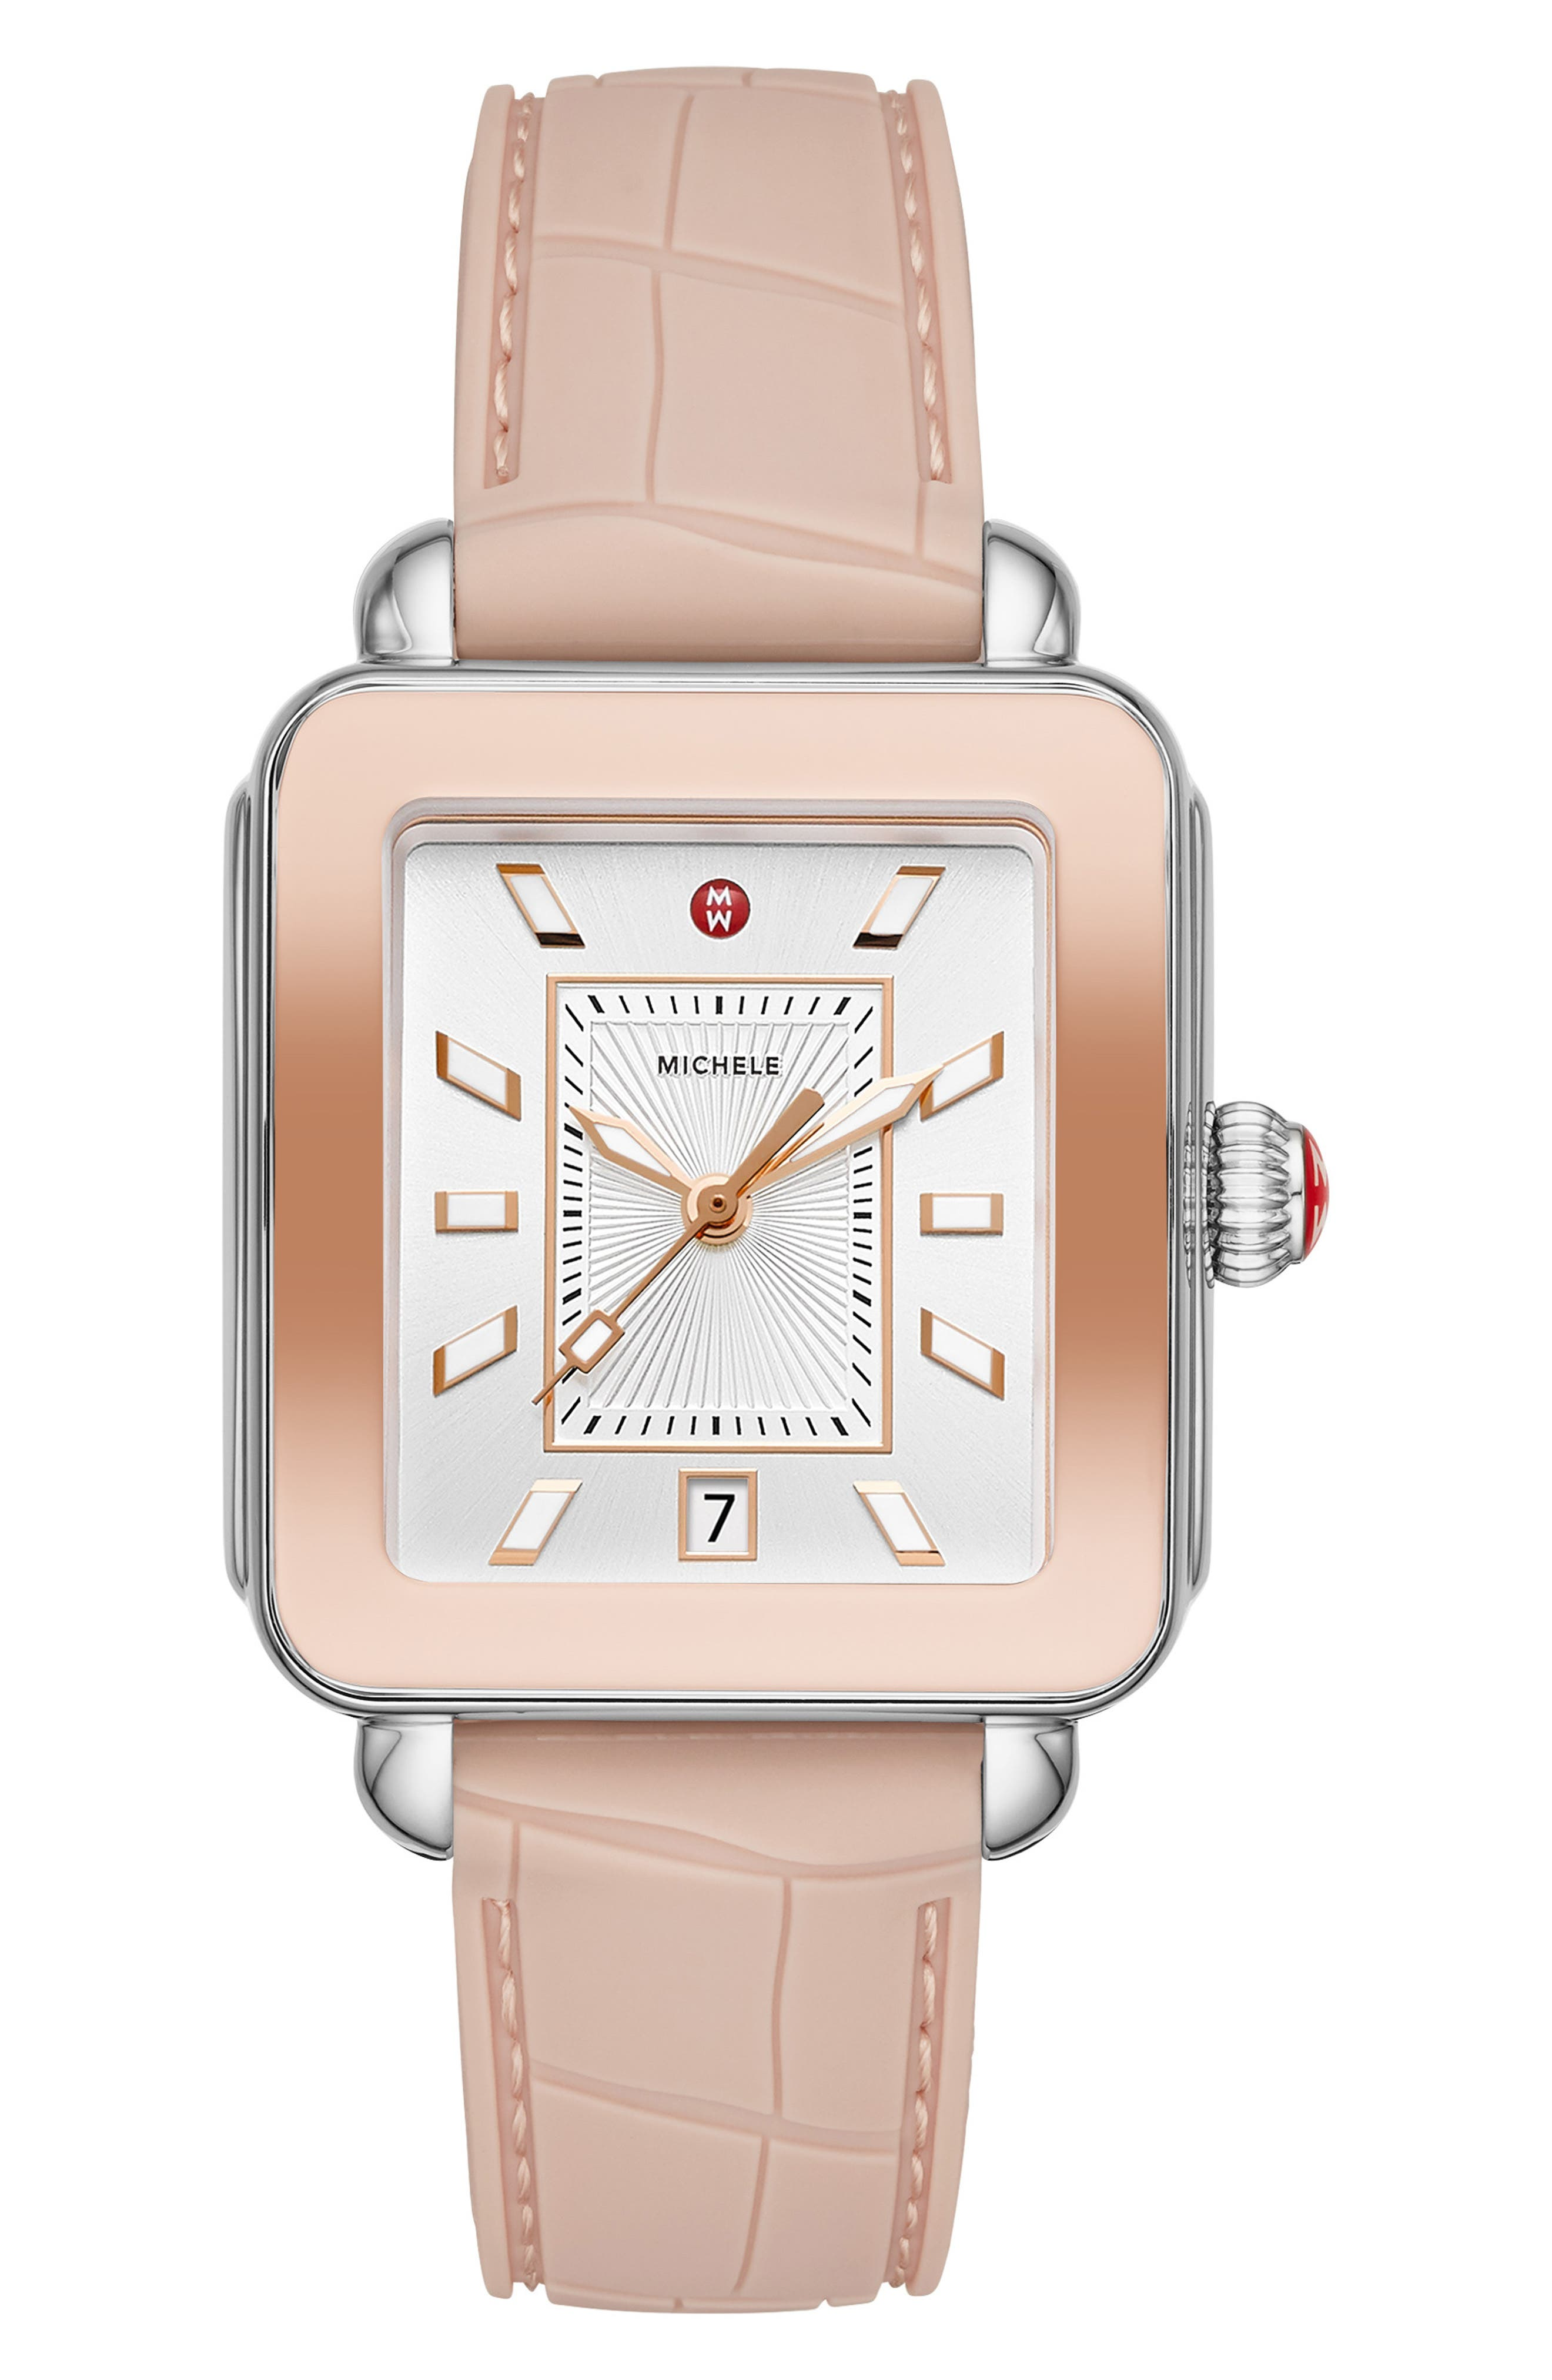 MICHELE, Deco Sport Watch Head & Silicone Strap Watch, 34mm x 36mm, Main thumbnail 1, color, PINK/ SILVER SUNRAY/ PINK GOLD